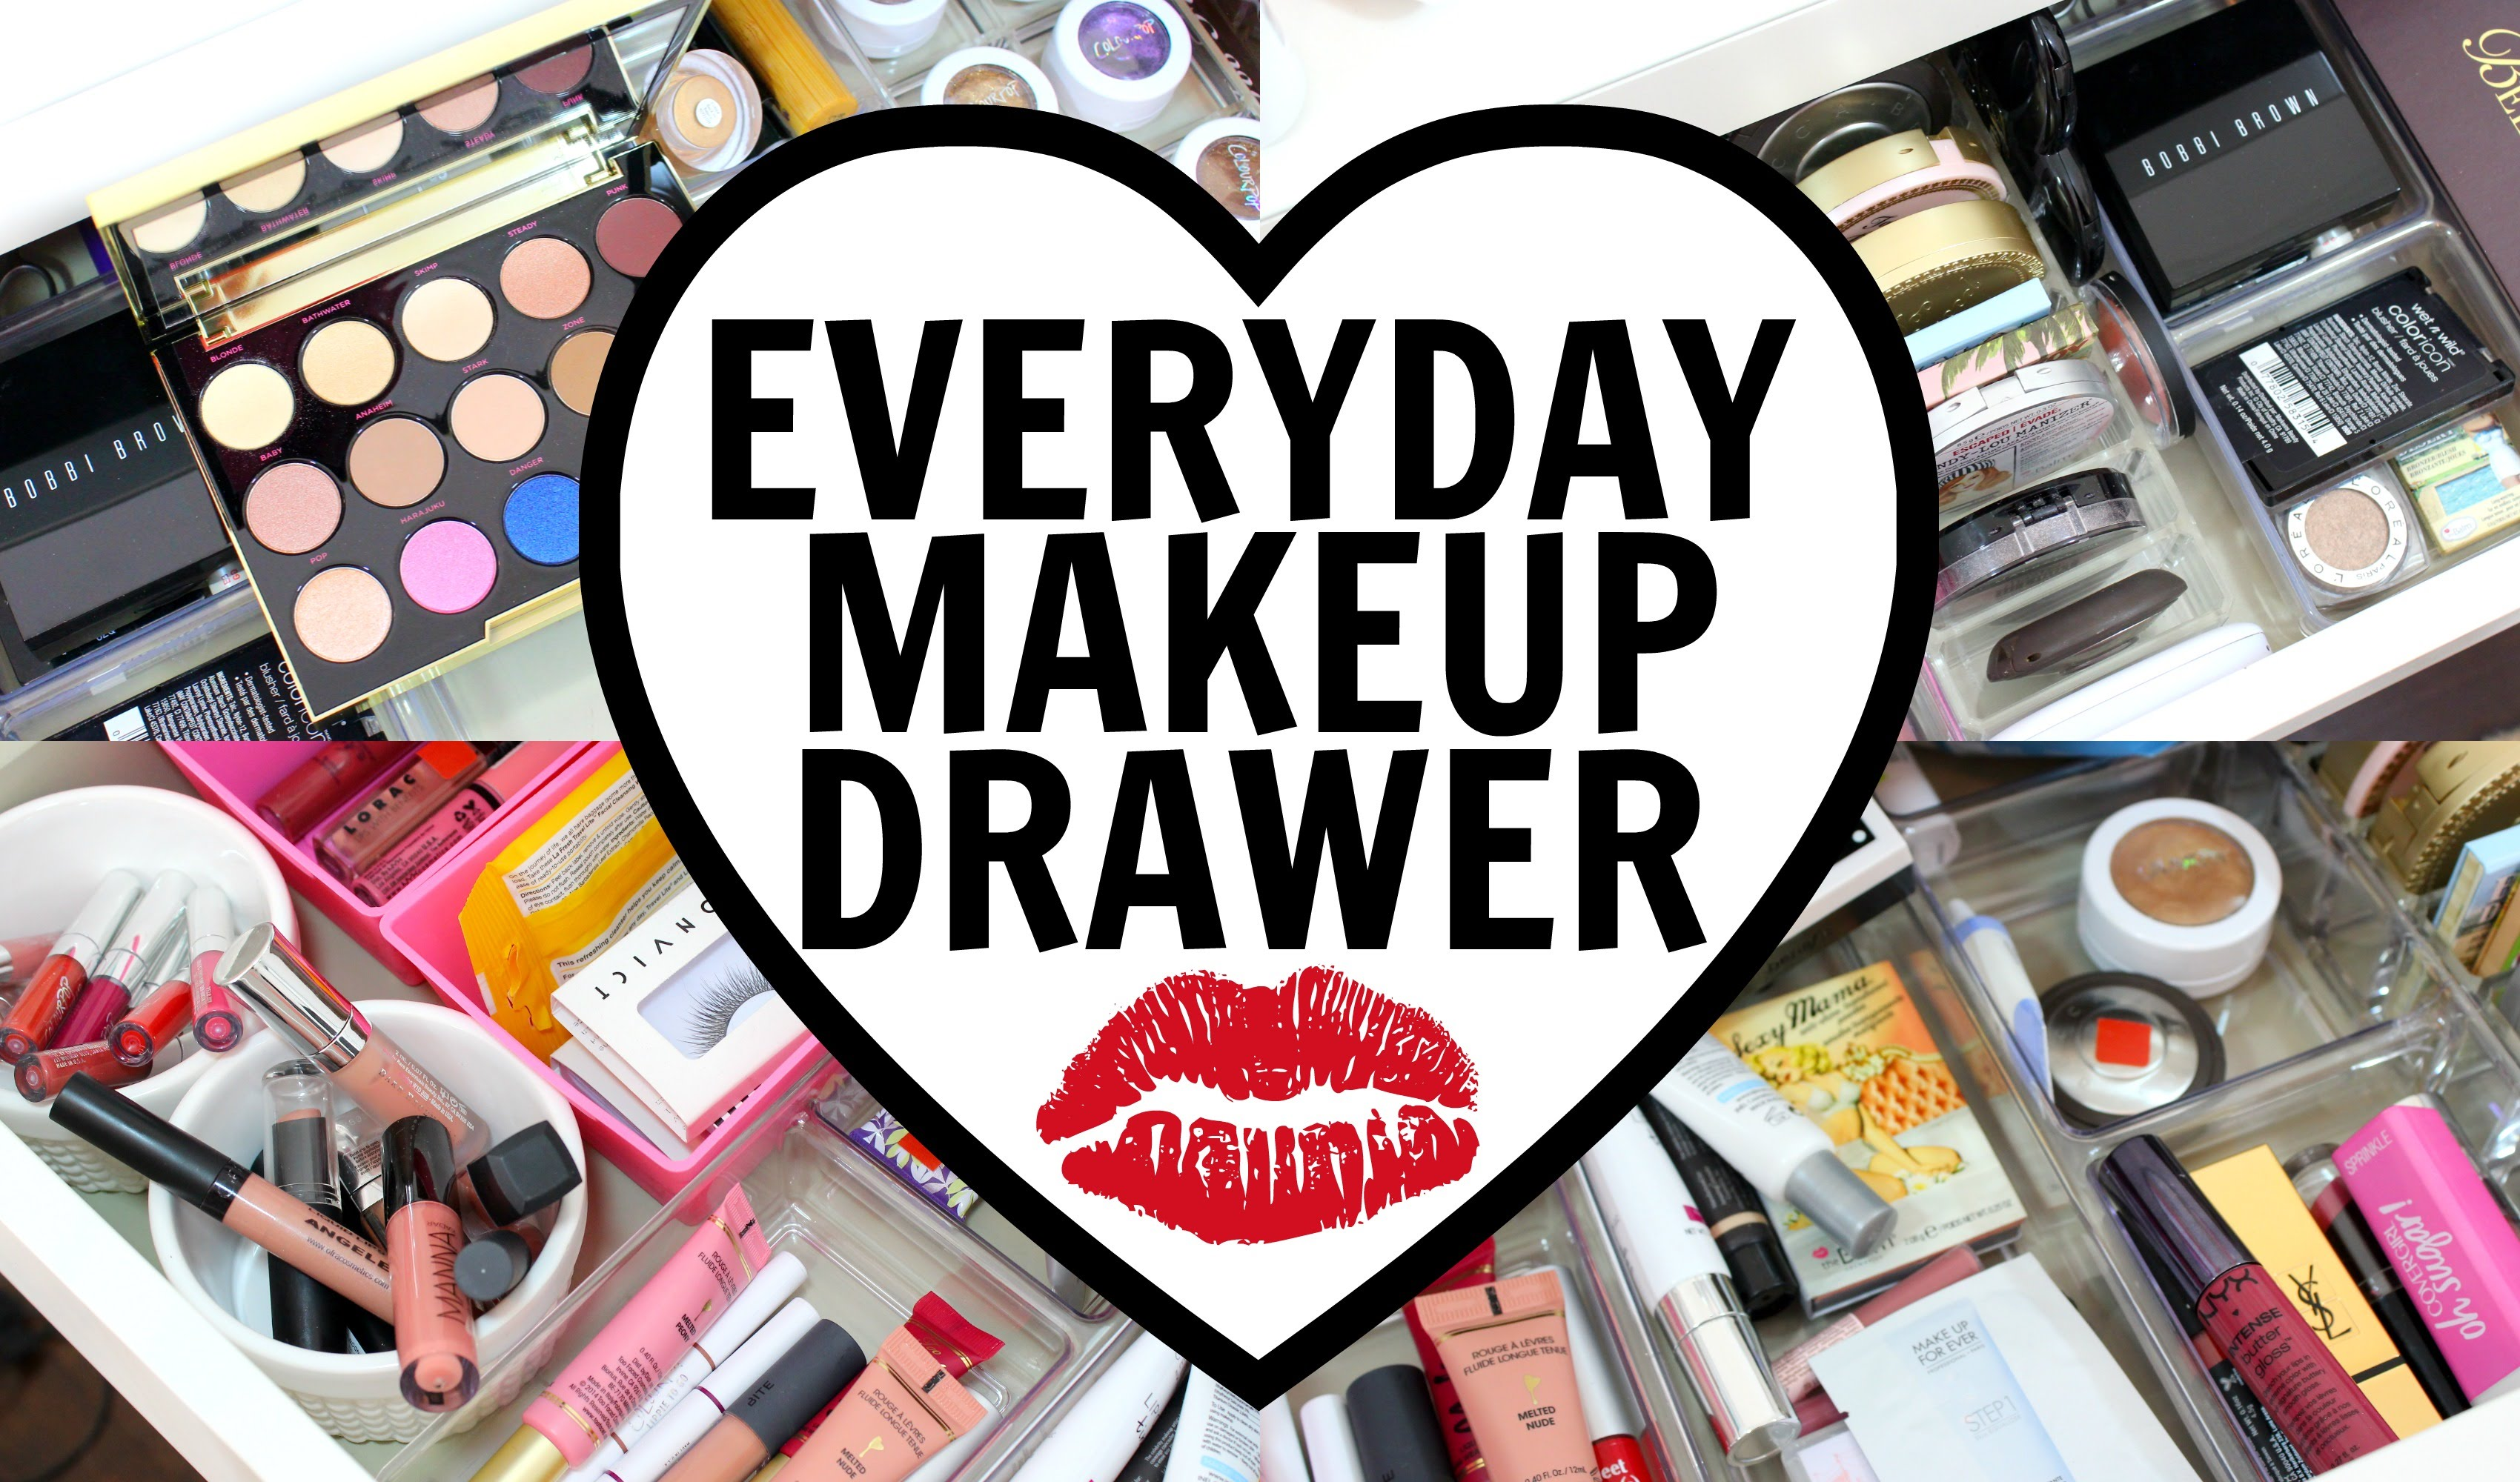 Everyday Makeup Drawer February 2016!   Part 10